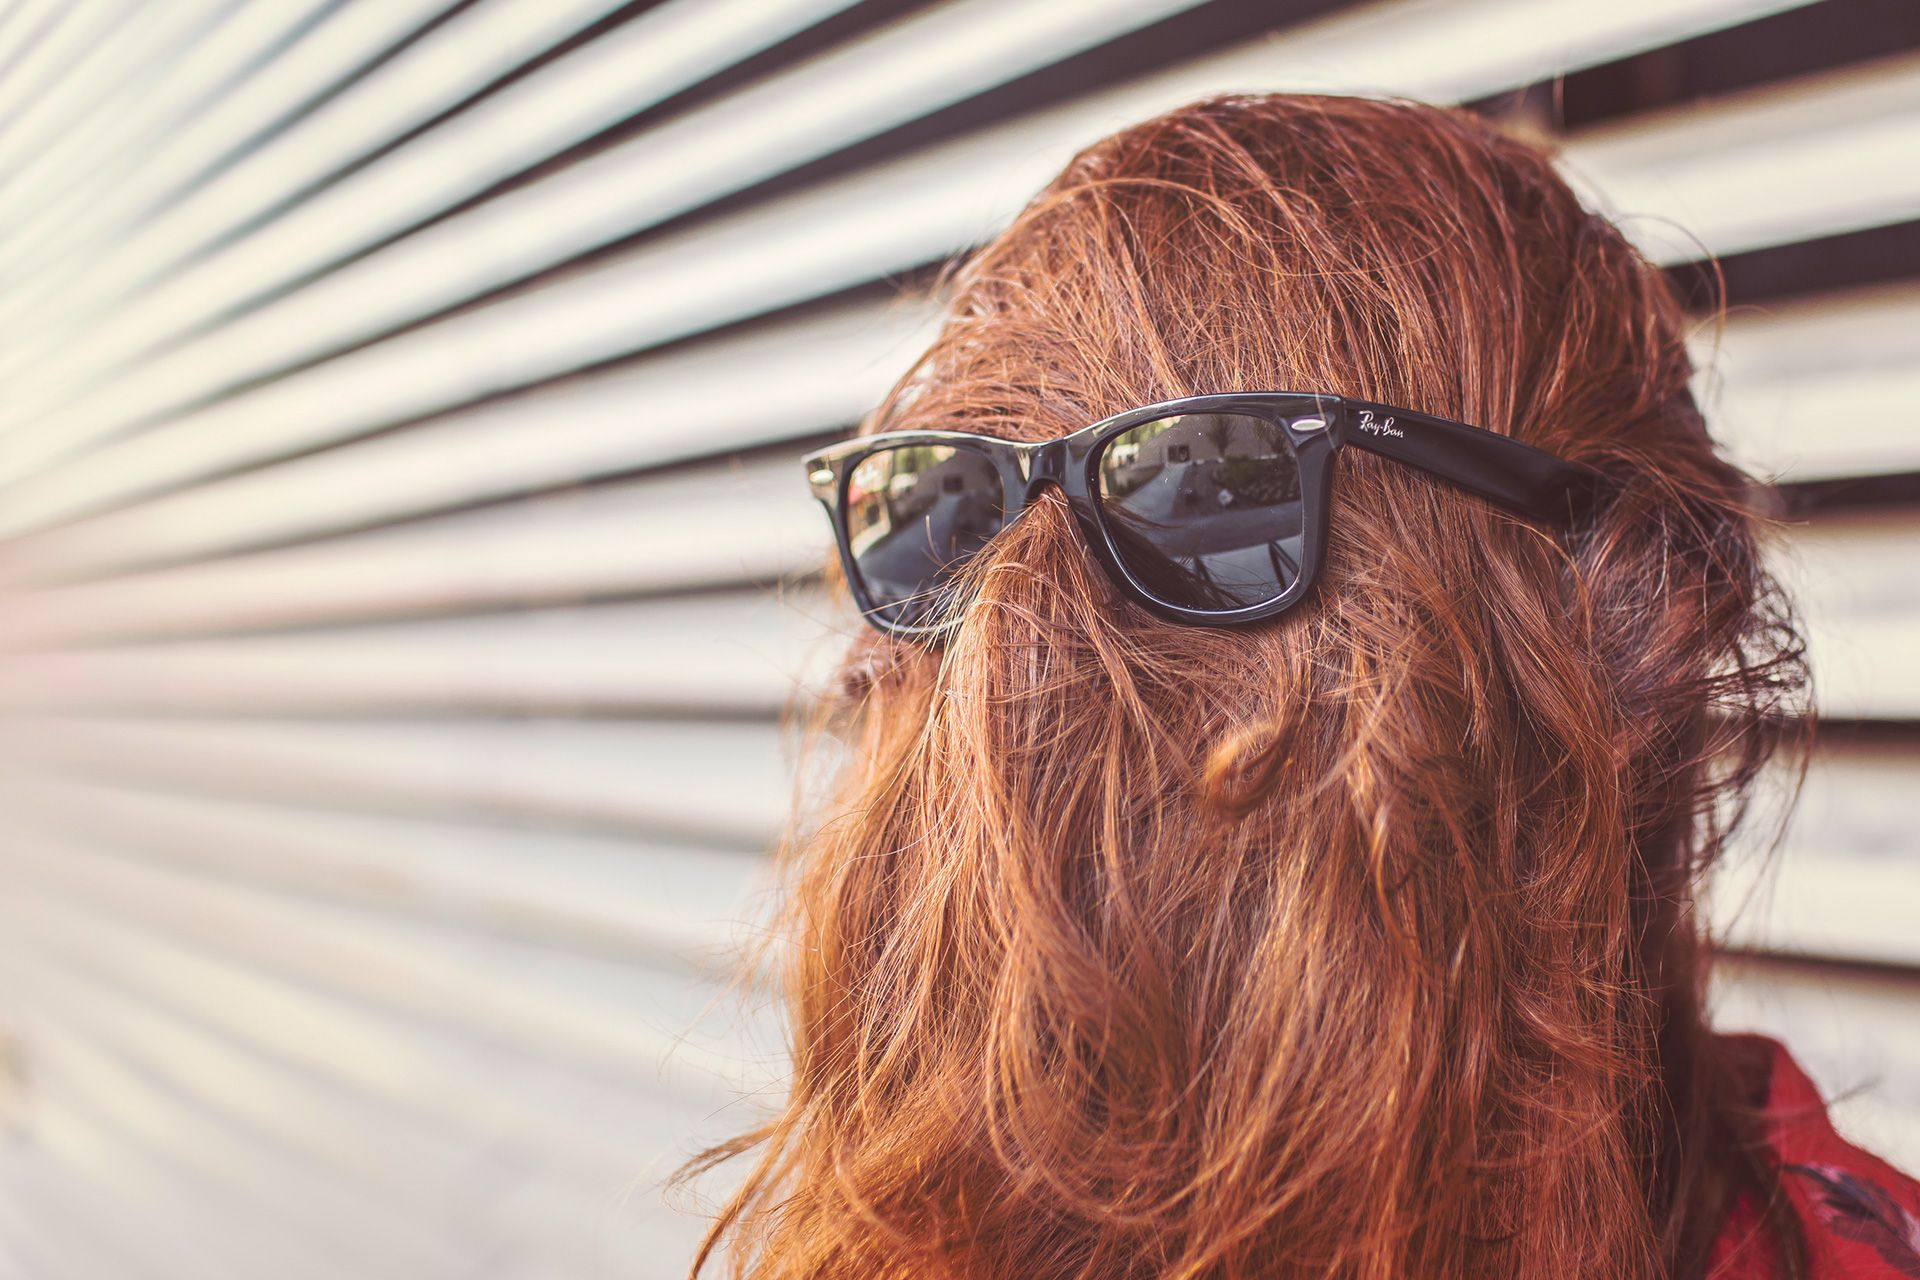 Hair Growth Tips for Women